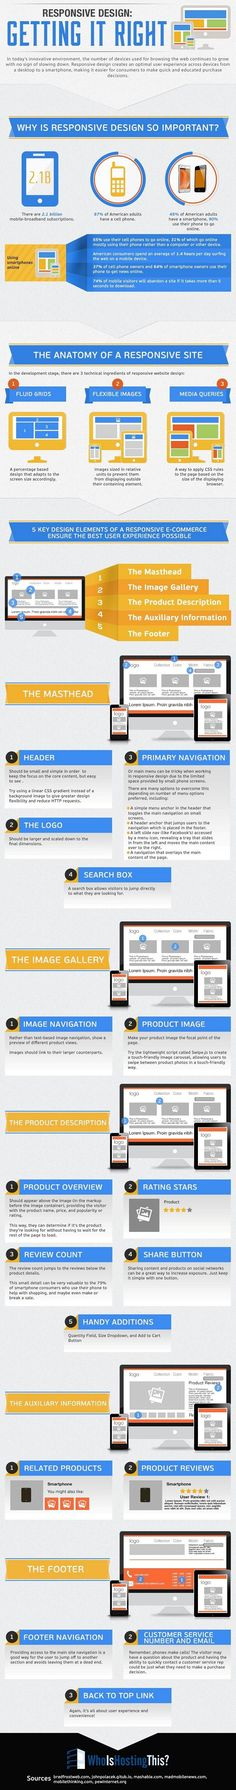 Web Sites - How to Do Responsive Web Design Right [Infographic] : MarketingProfs Article